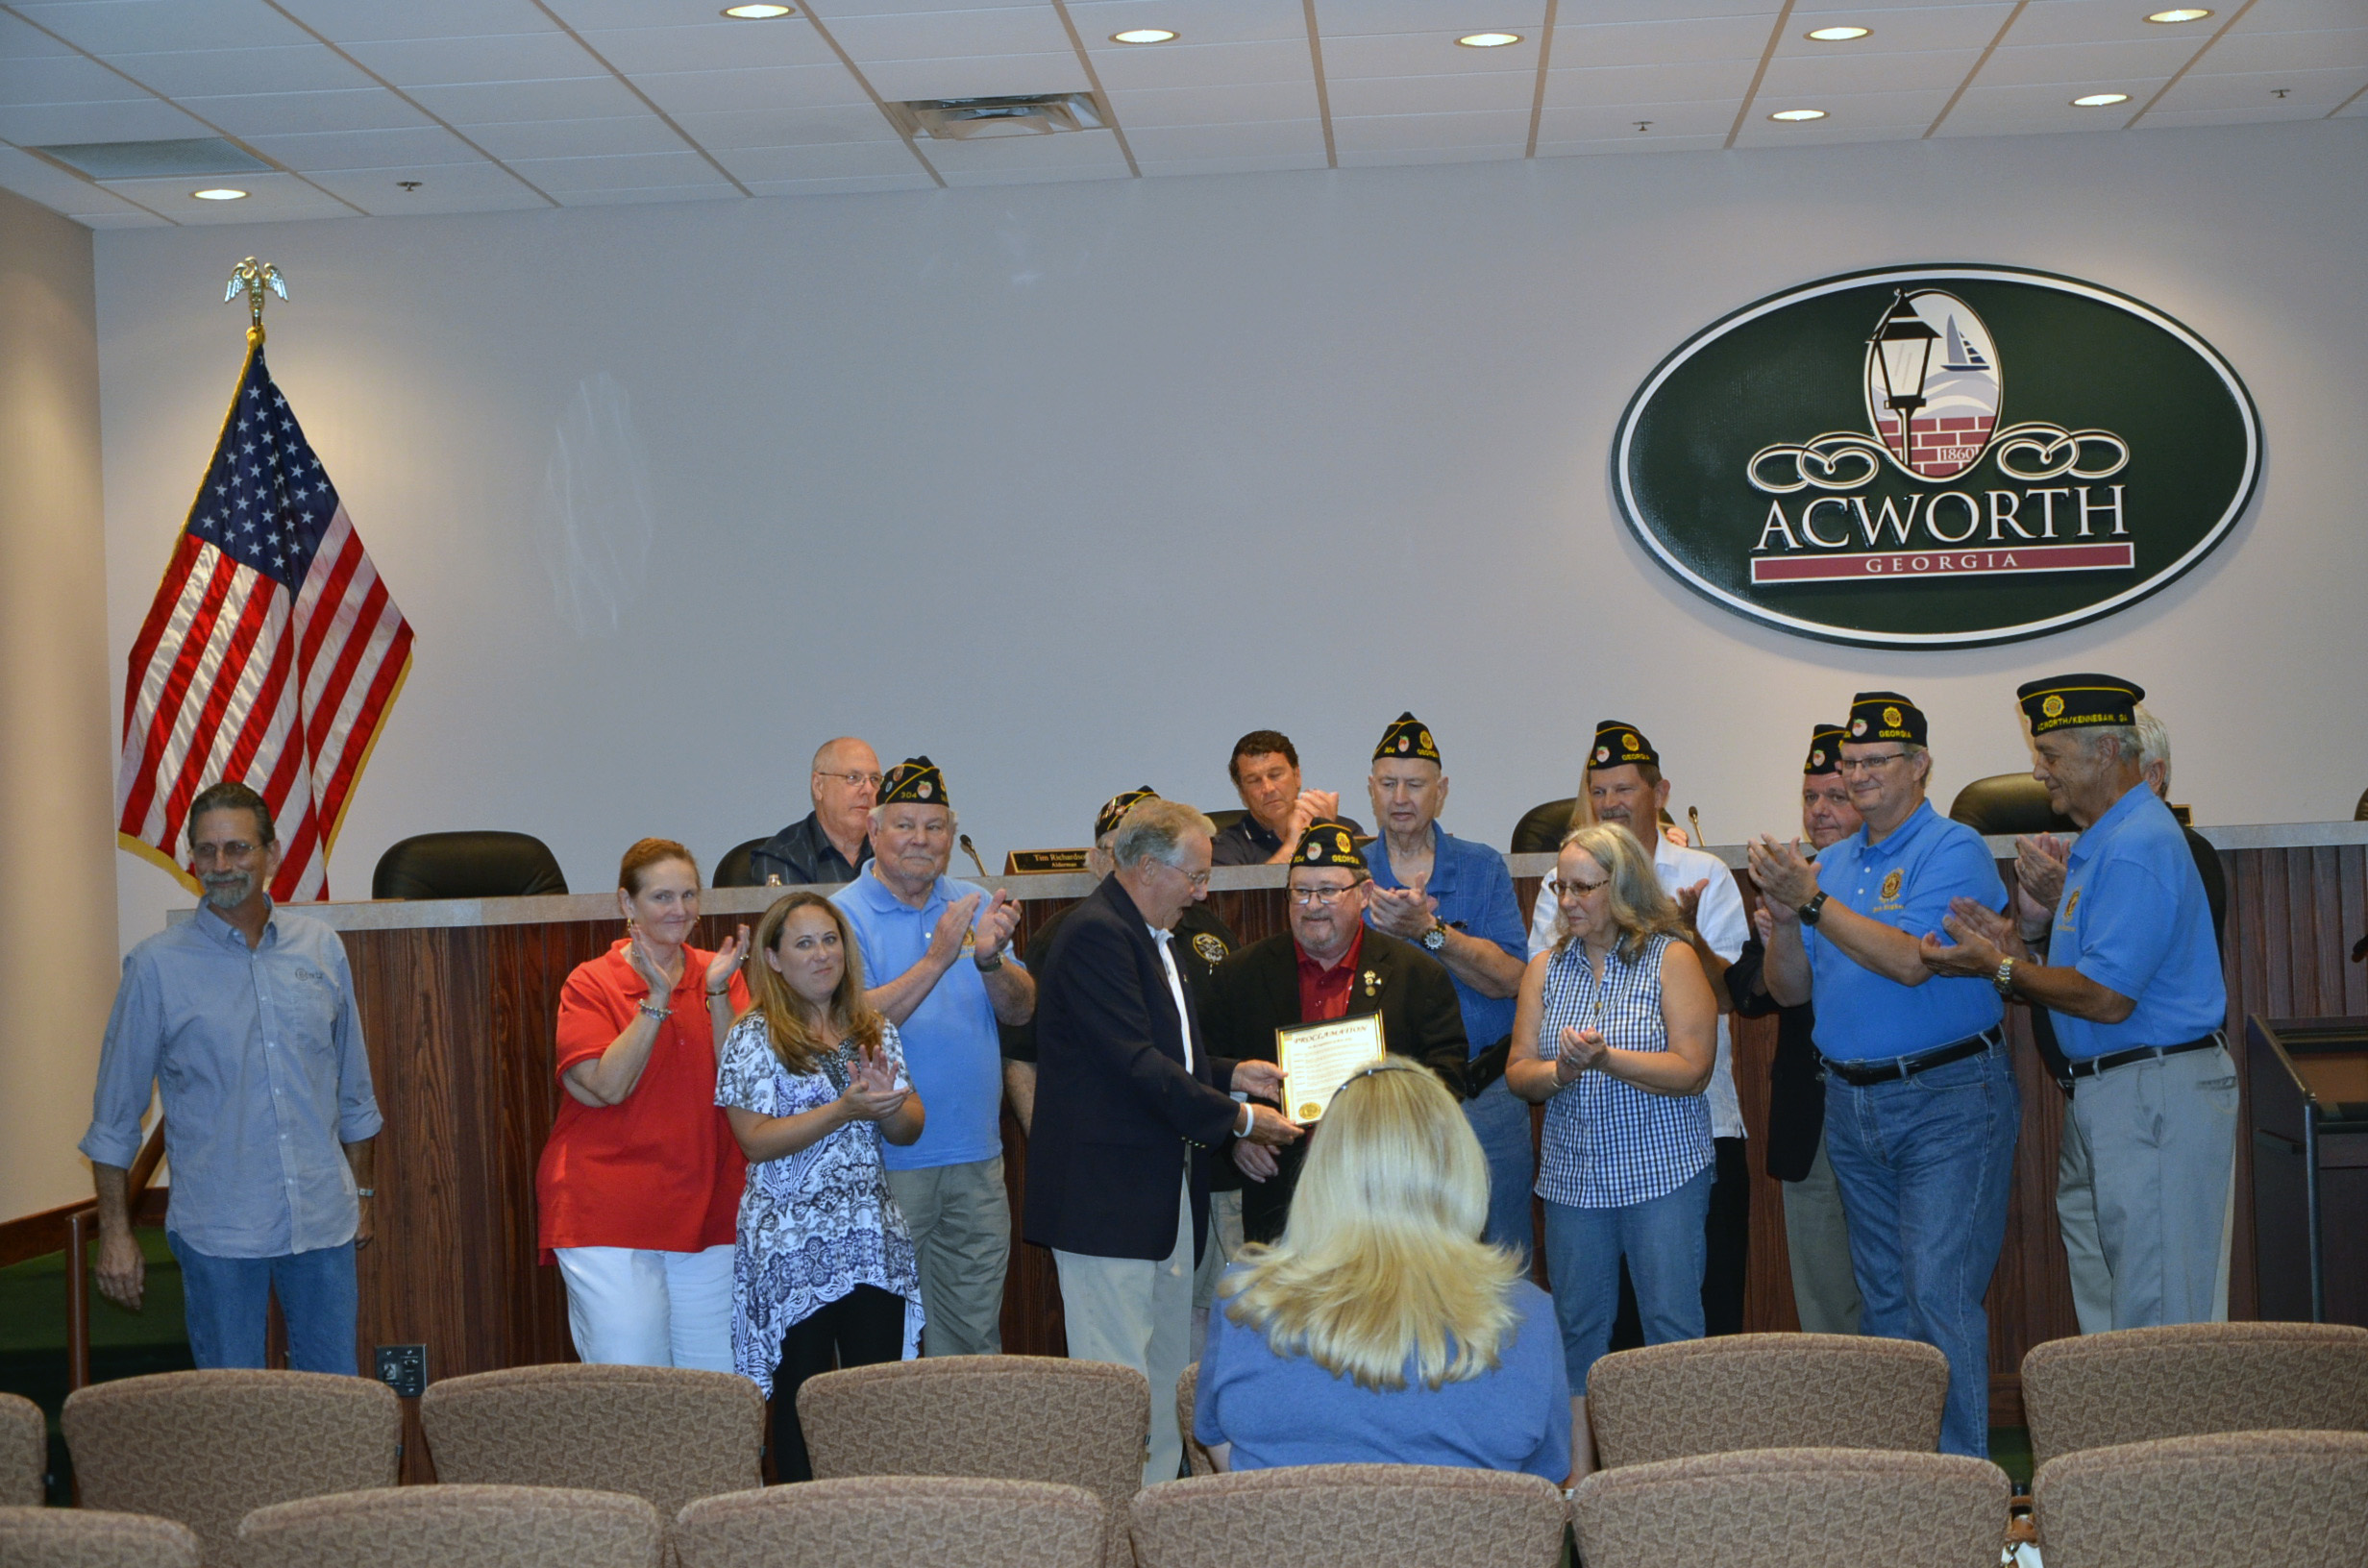 Proclamation recognizing Ron Asby for his service as the American Legion North Cobb Post 304 Commander